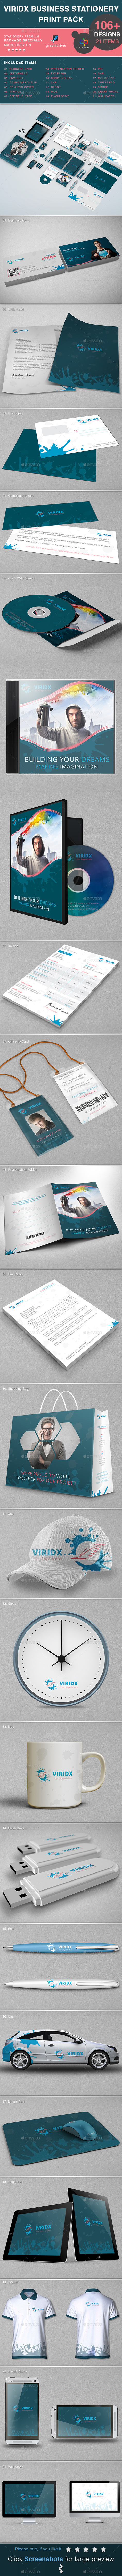 GraphicRiver Viridx Business Stationery Print Pack 11181025